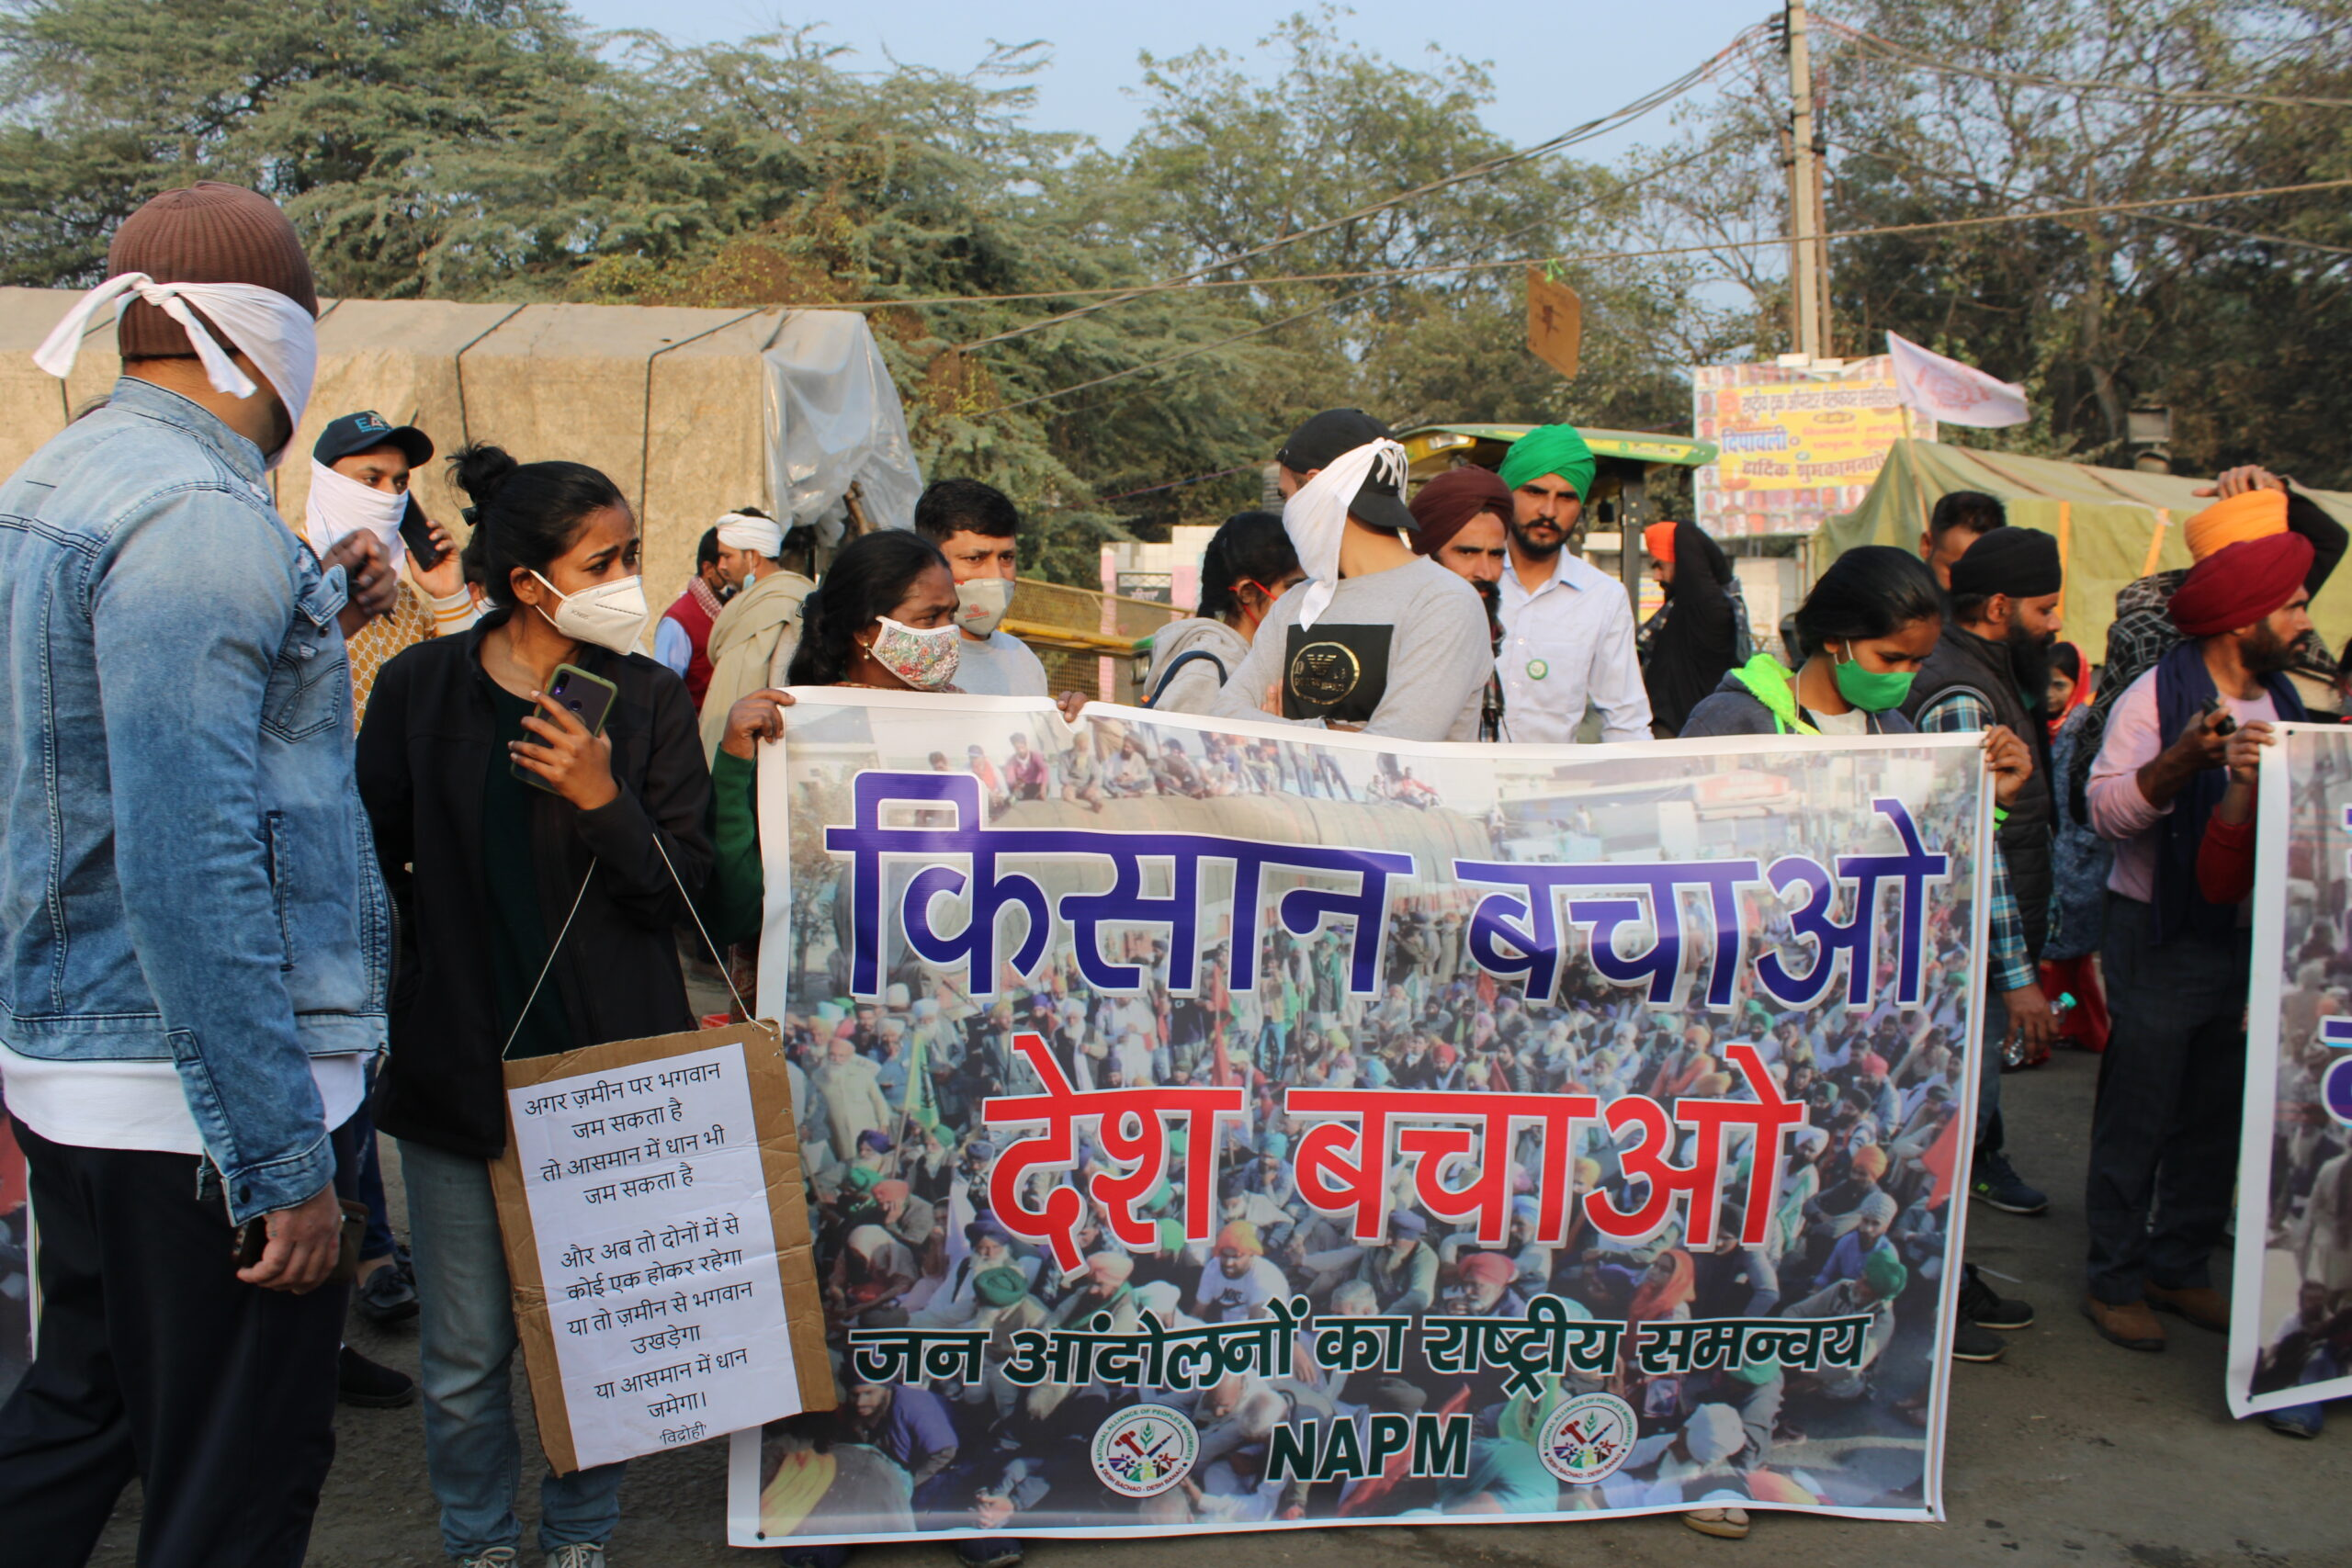 Thousands gather at Delhi's Singhu border in support of farmers